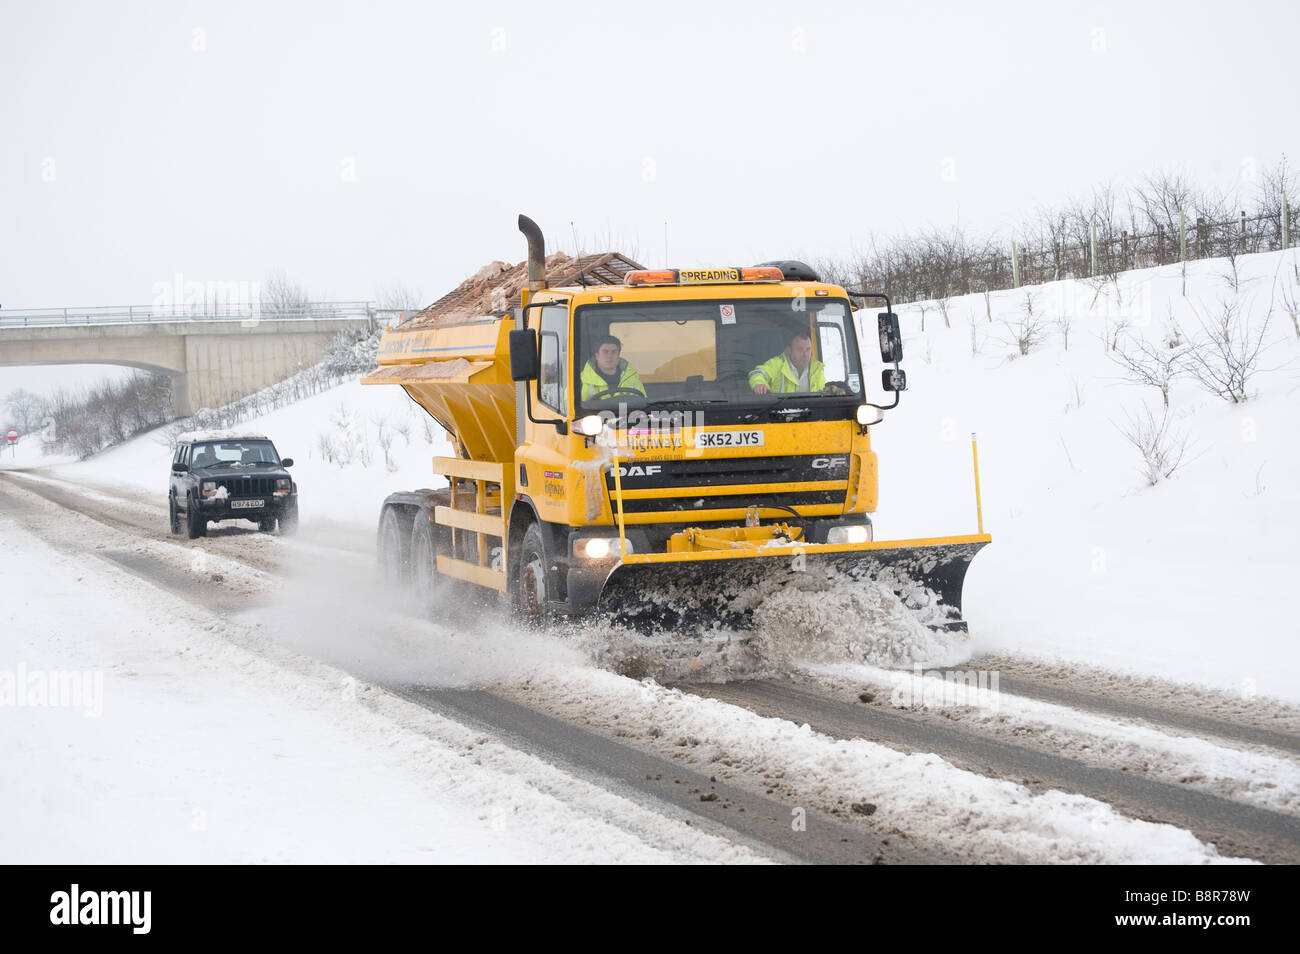 Snow Plough Car >> Gritter lorry with snow plough fitted to the front clearing the roads Stock Photo: 22638249 - Alamy